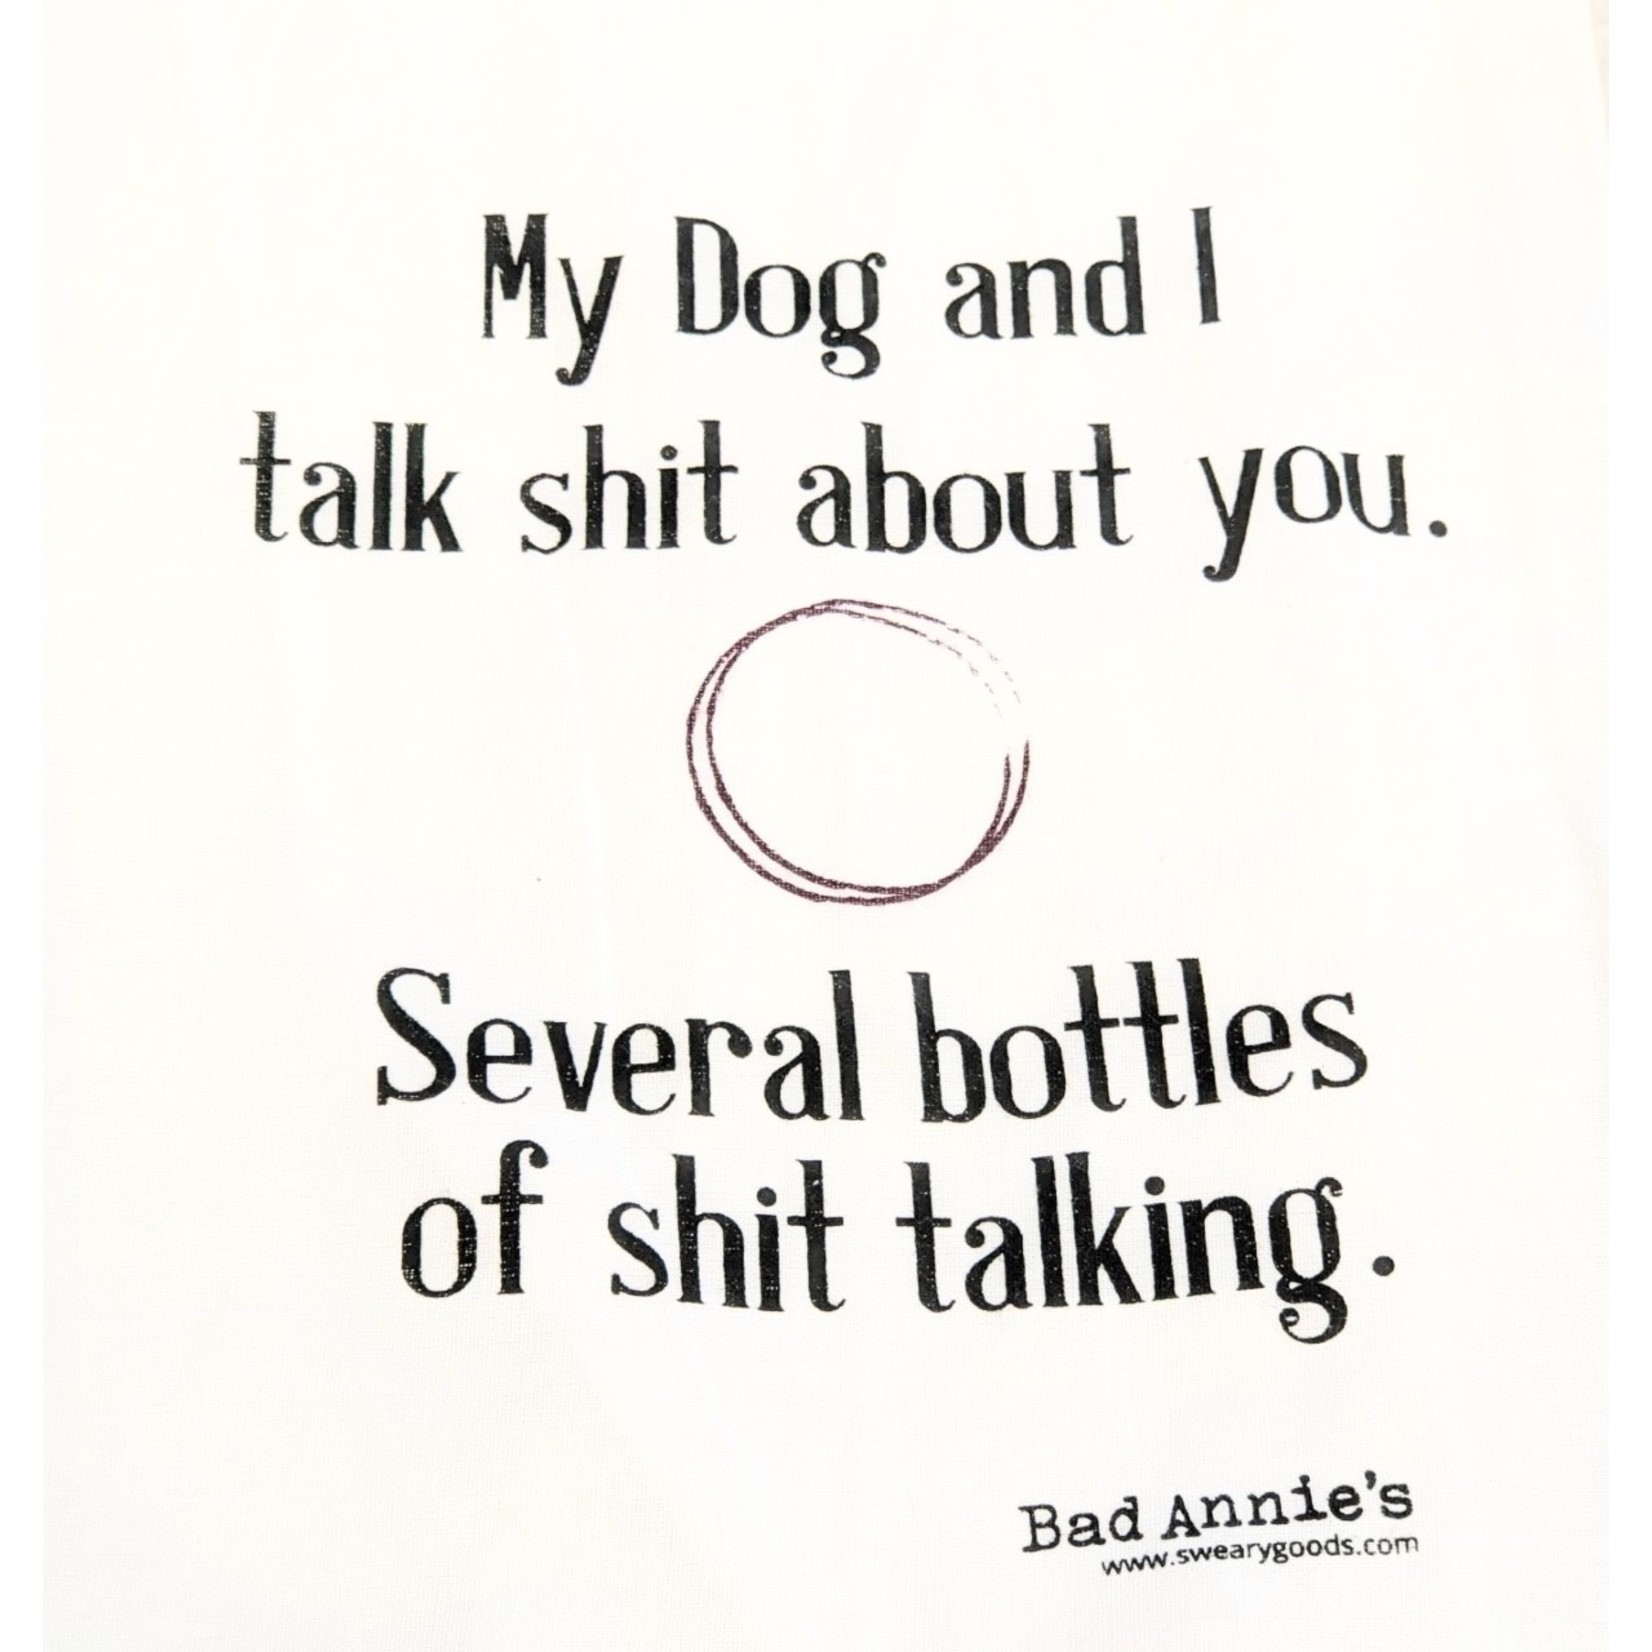 Bad Annie's Dish Towel - My Dog And I Talk Shit About You